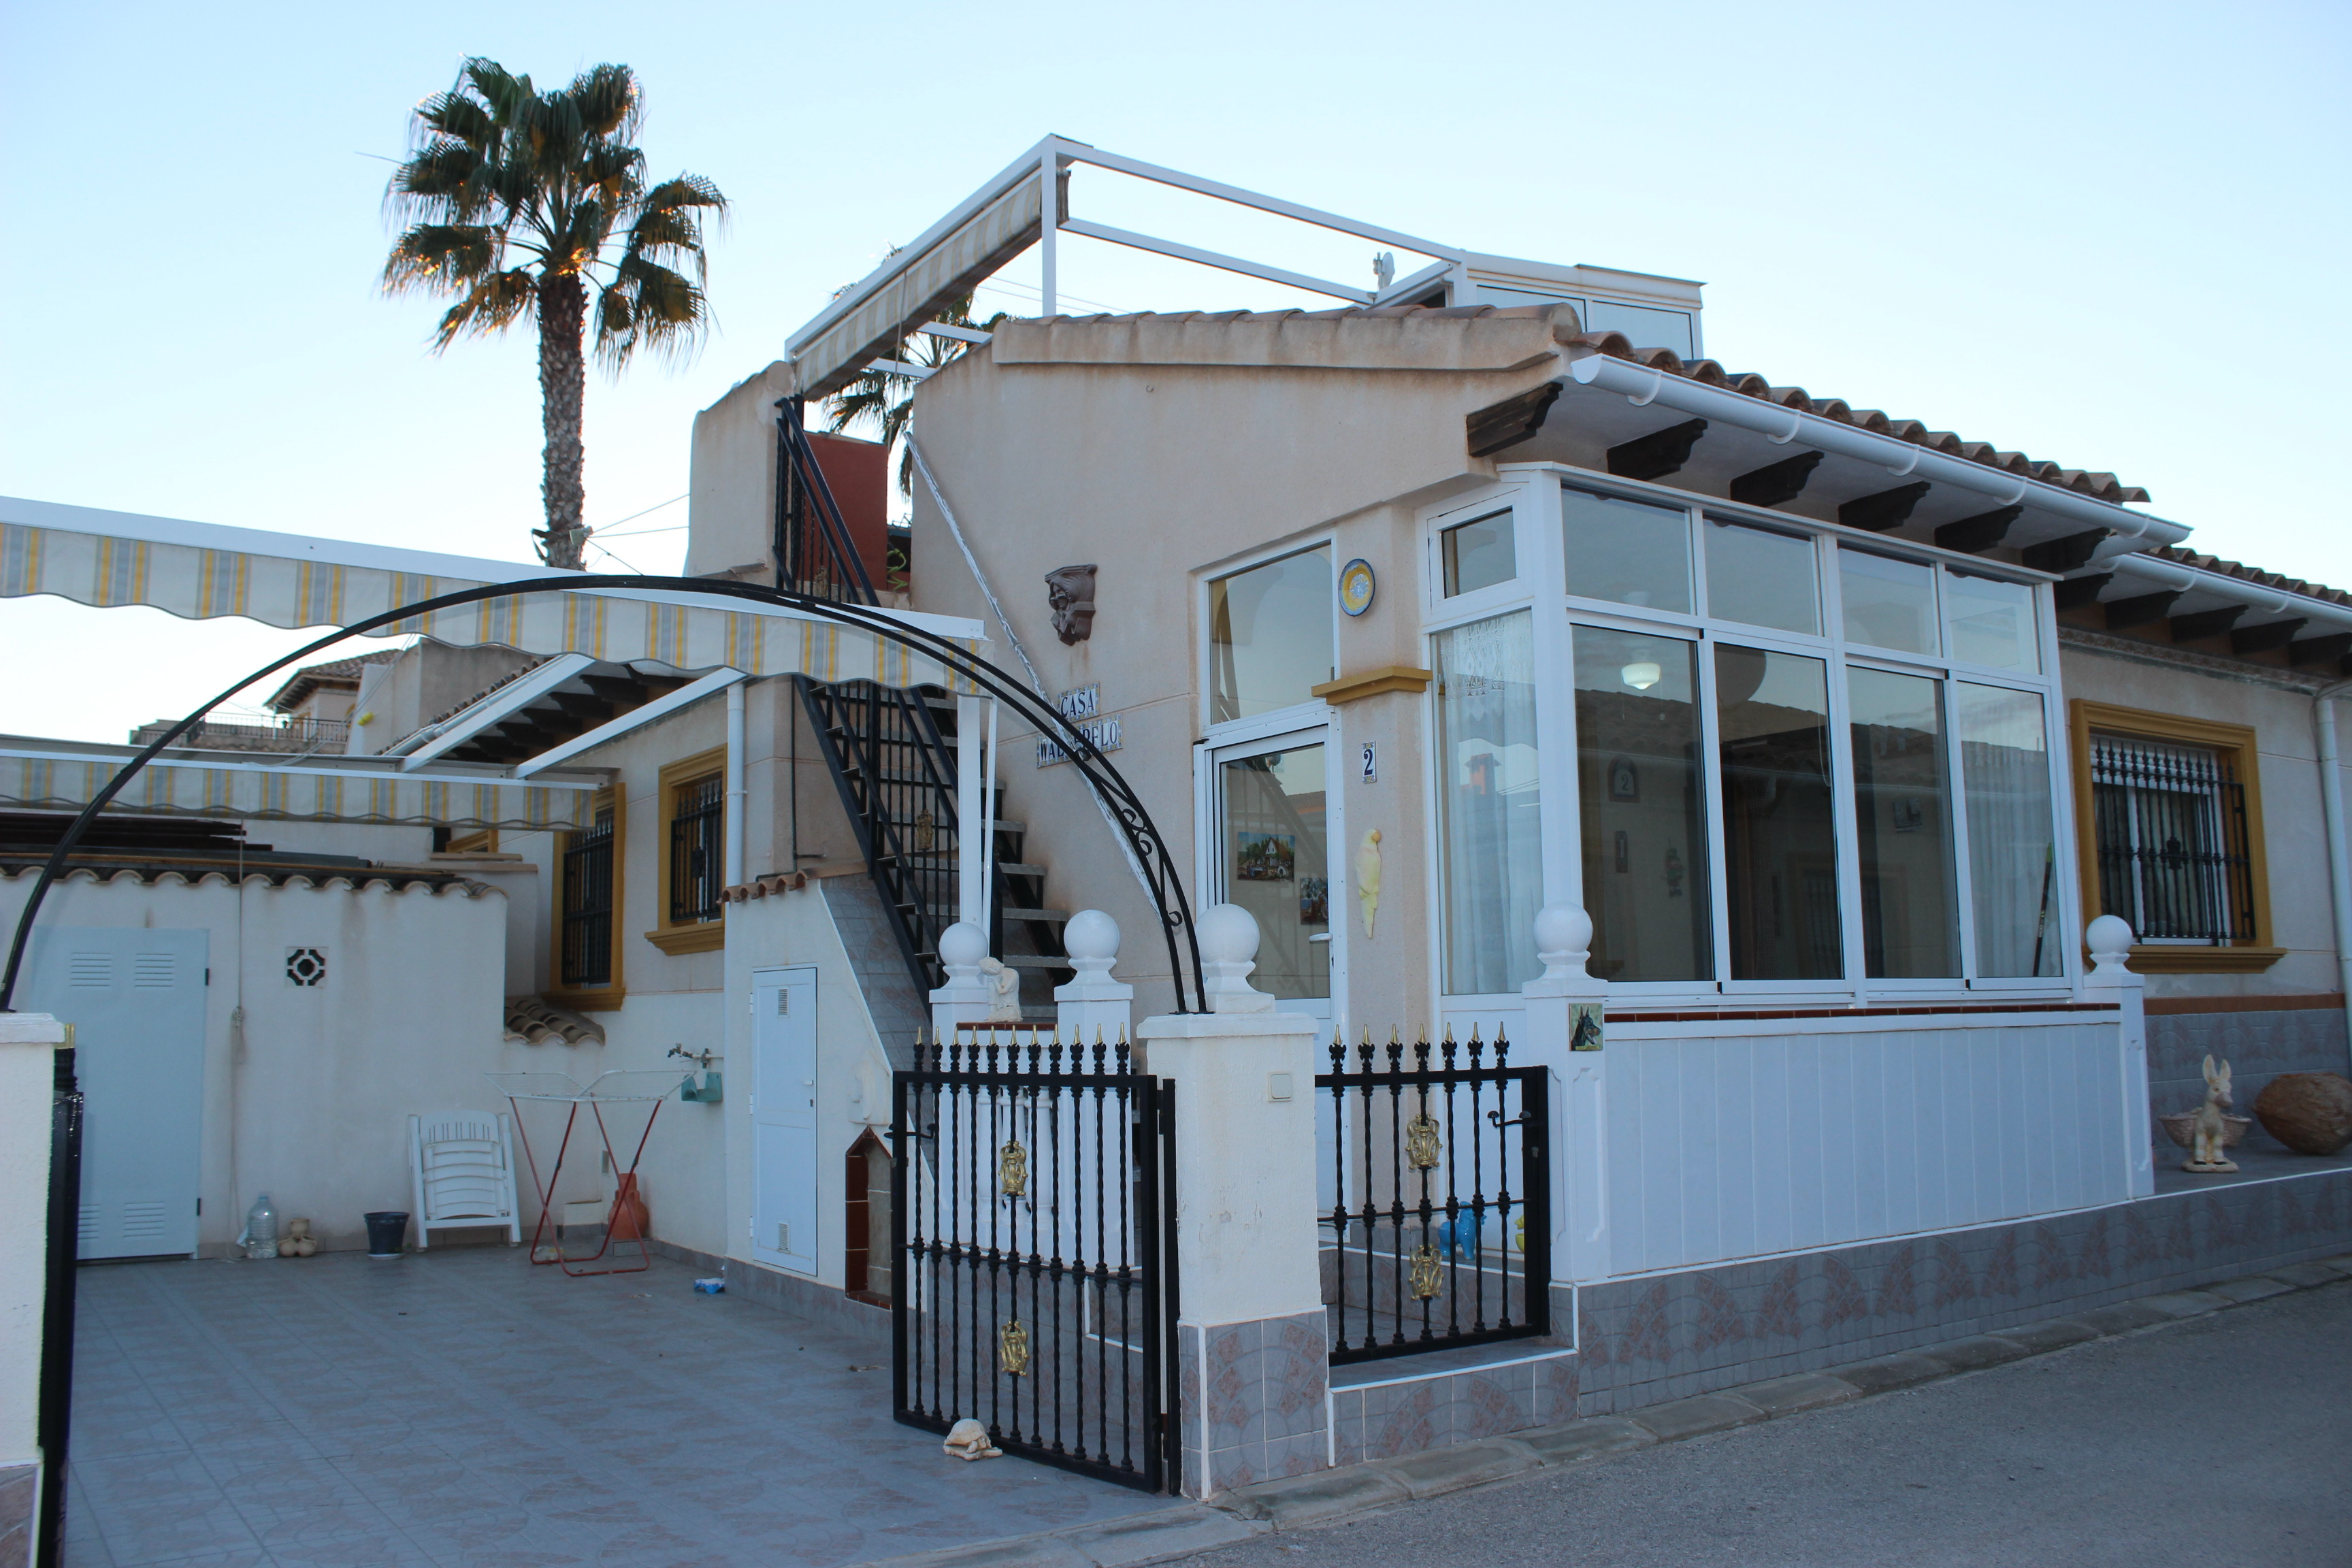 Nice two bedroom Marbella bungalow for sale on popular Playa Flamenca urbanisation